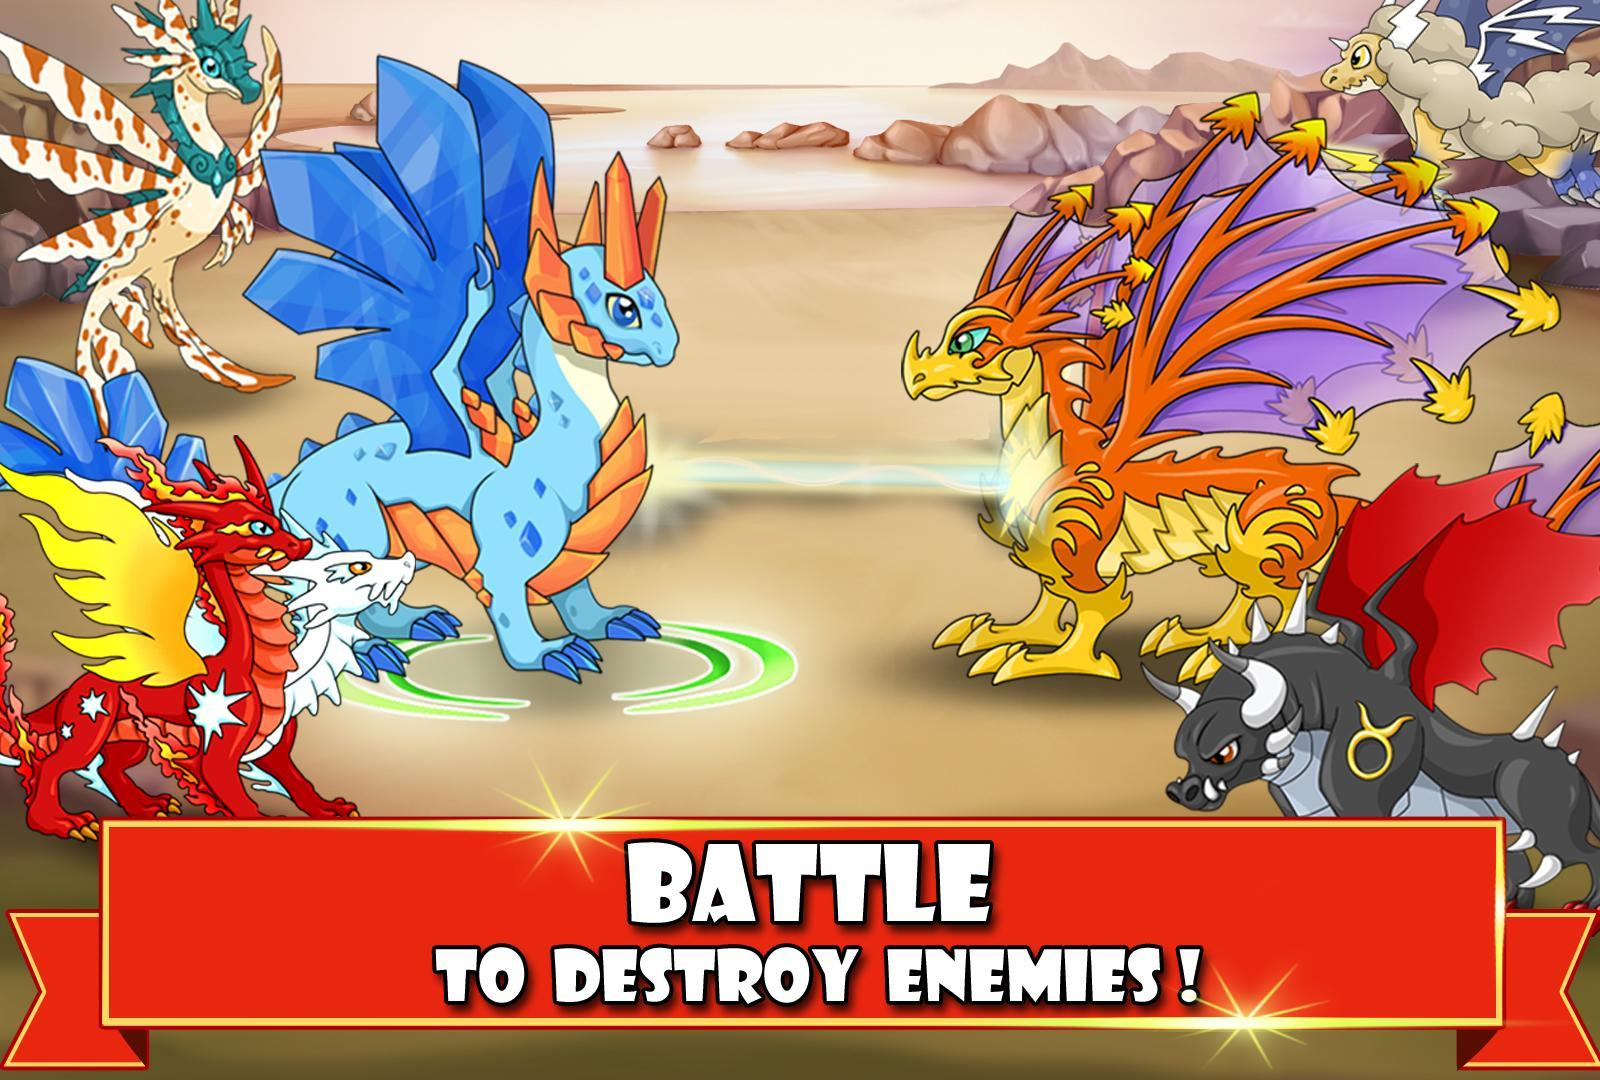 Dragon Battle for Android - APK Download